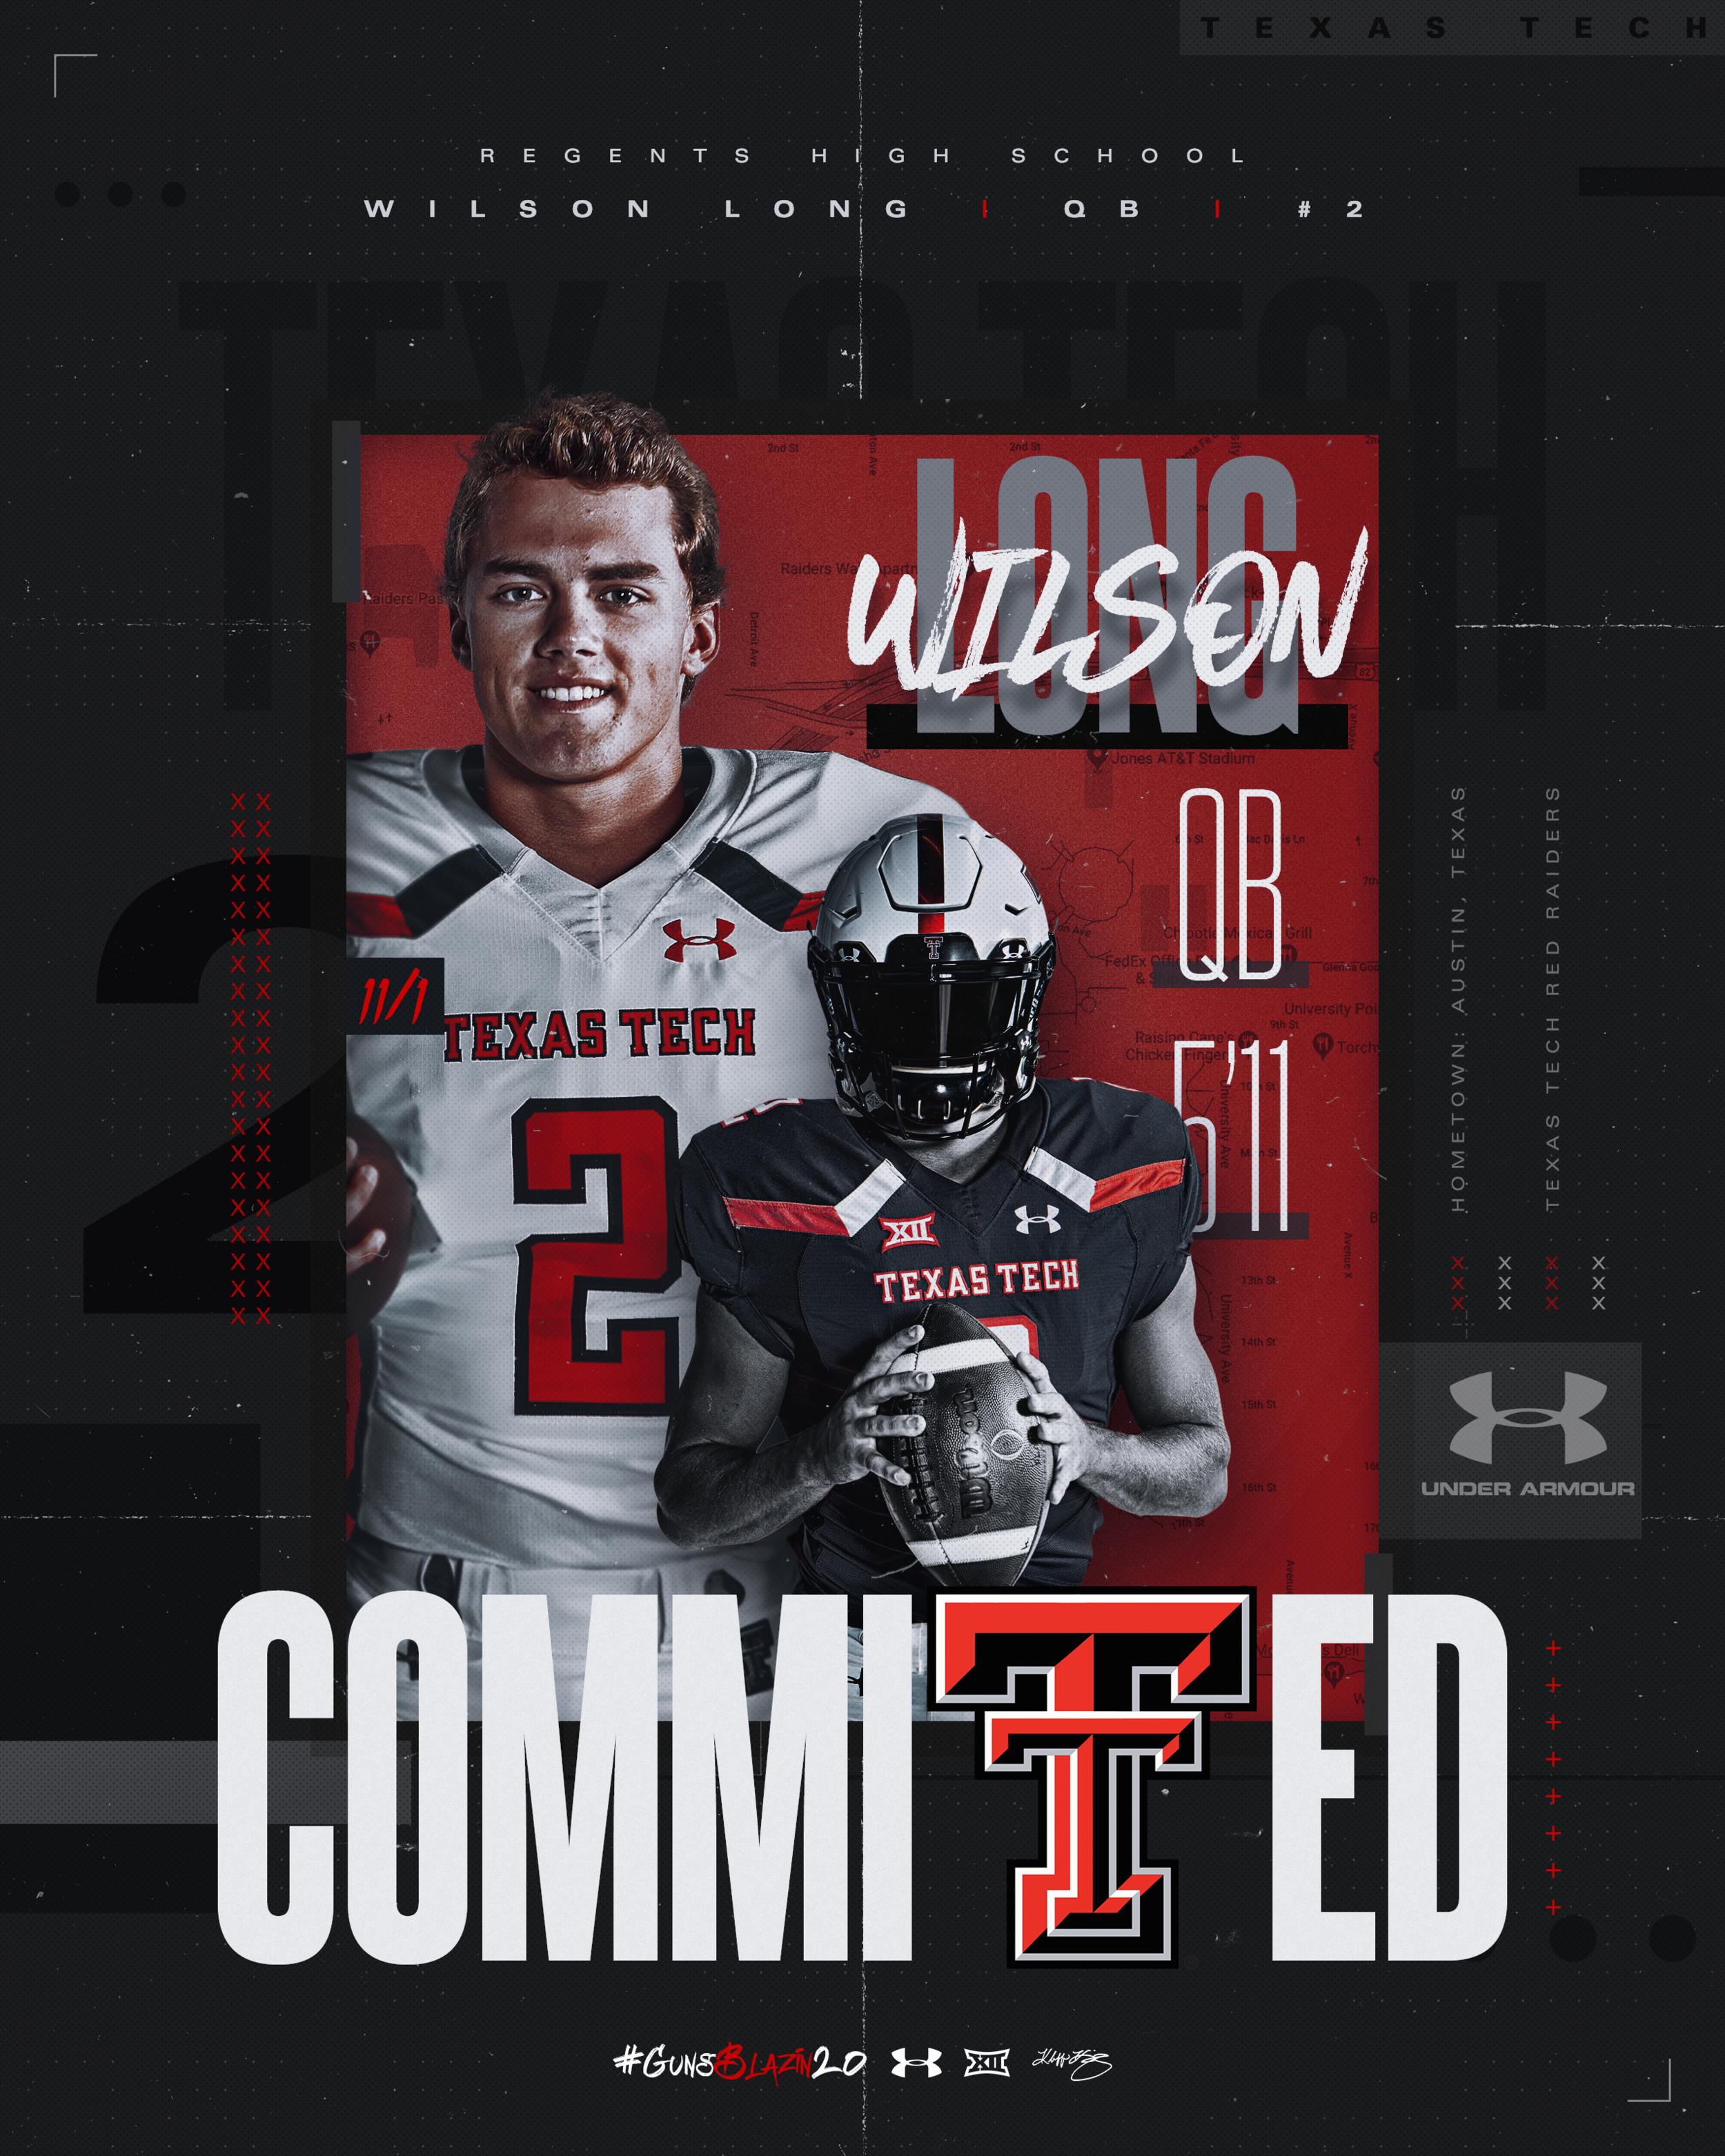 1103_2018_TTU_FB_2020_Recruit_Commit.png